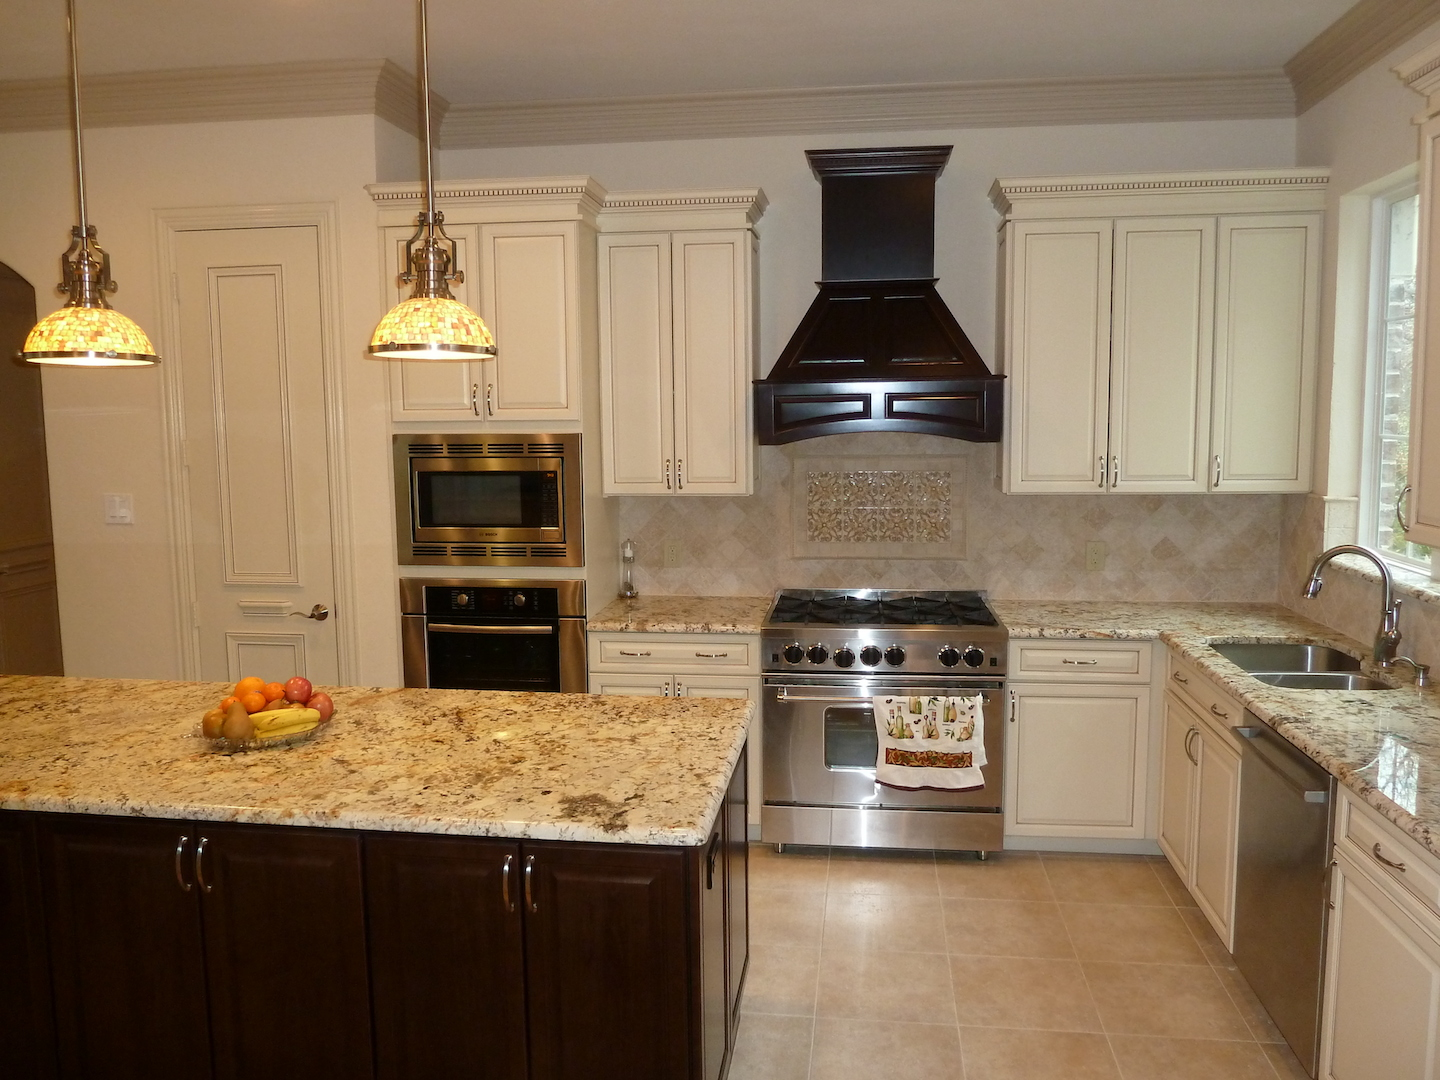 Kitchen redesign and remodeling in flower mound tx for Kitchen redesign